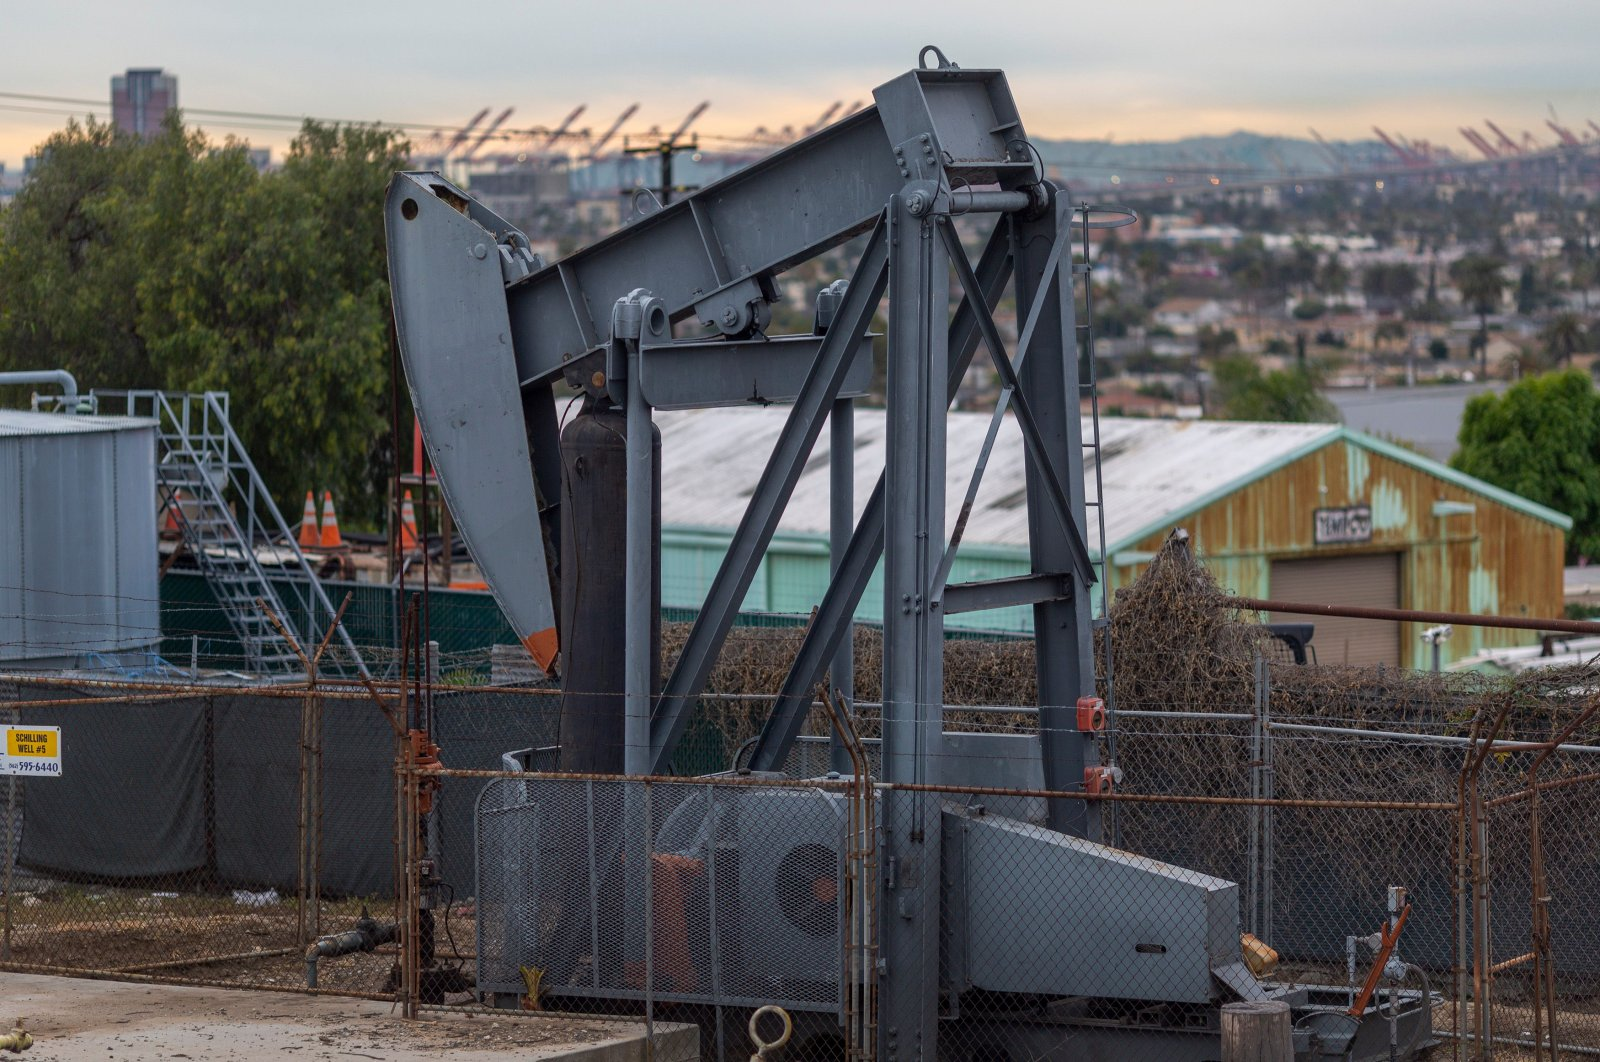 Pump jacks draw crude oil from the Long Beach Oil Field in Signal Hill, California, March 9, 2020. (AFP Photo)